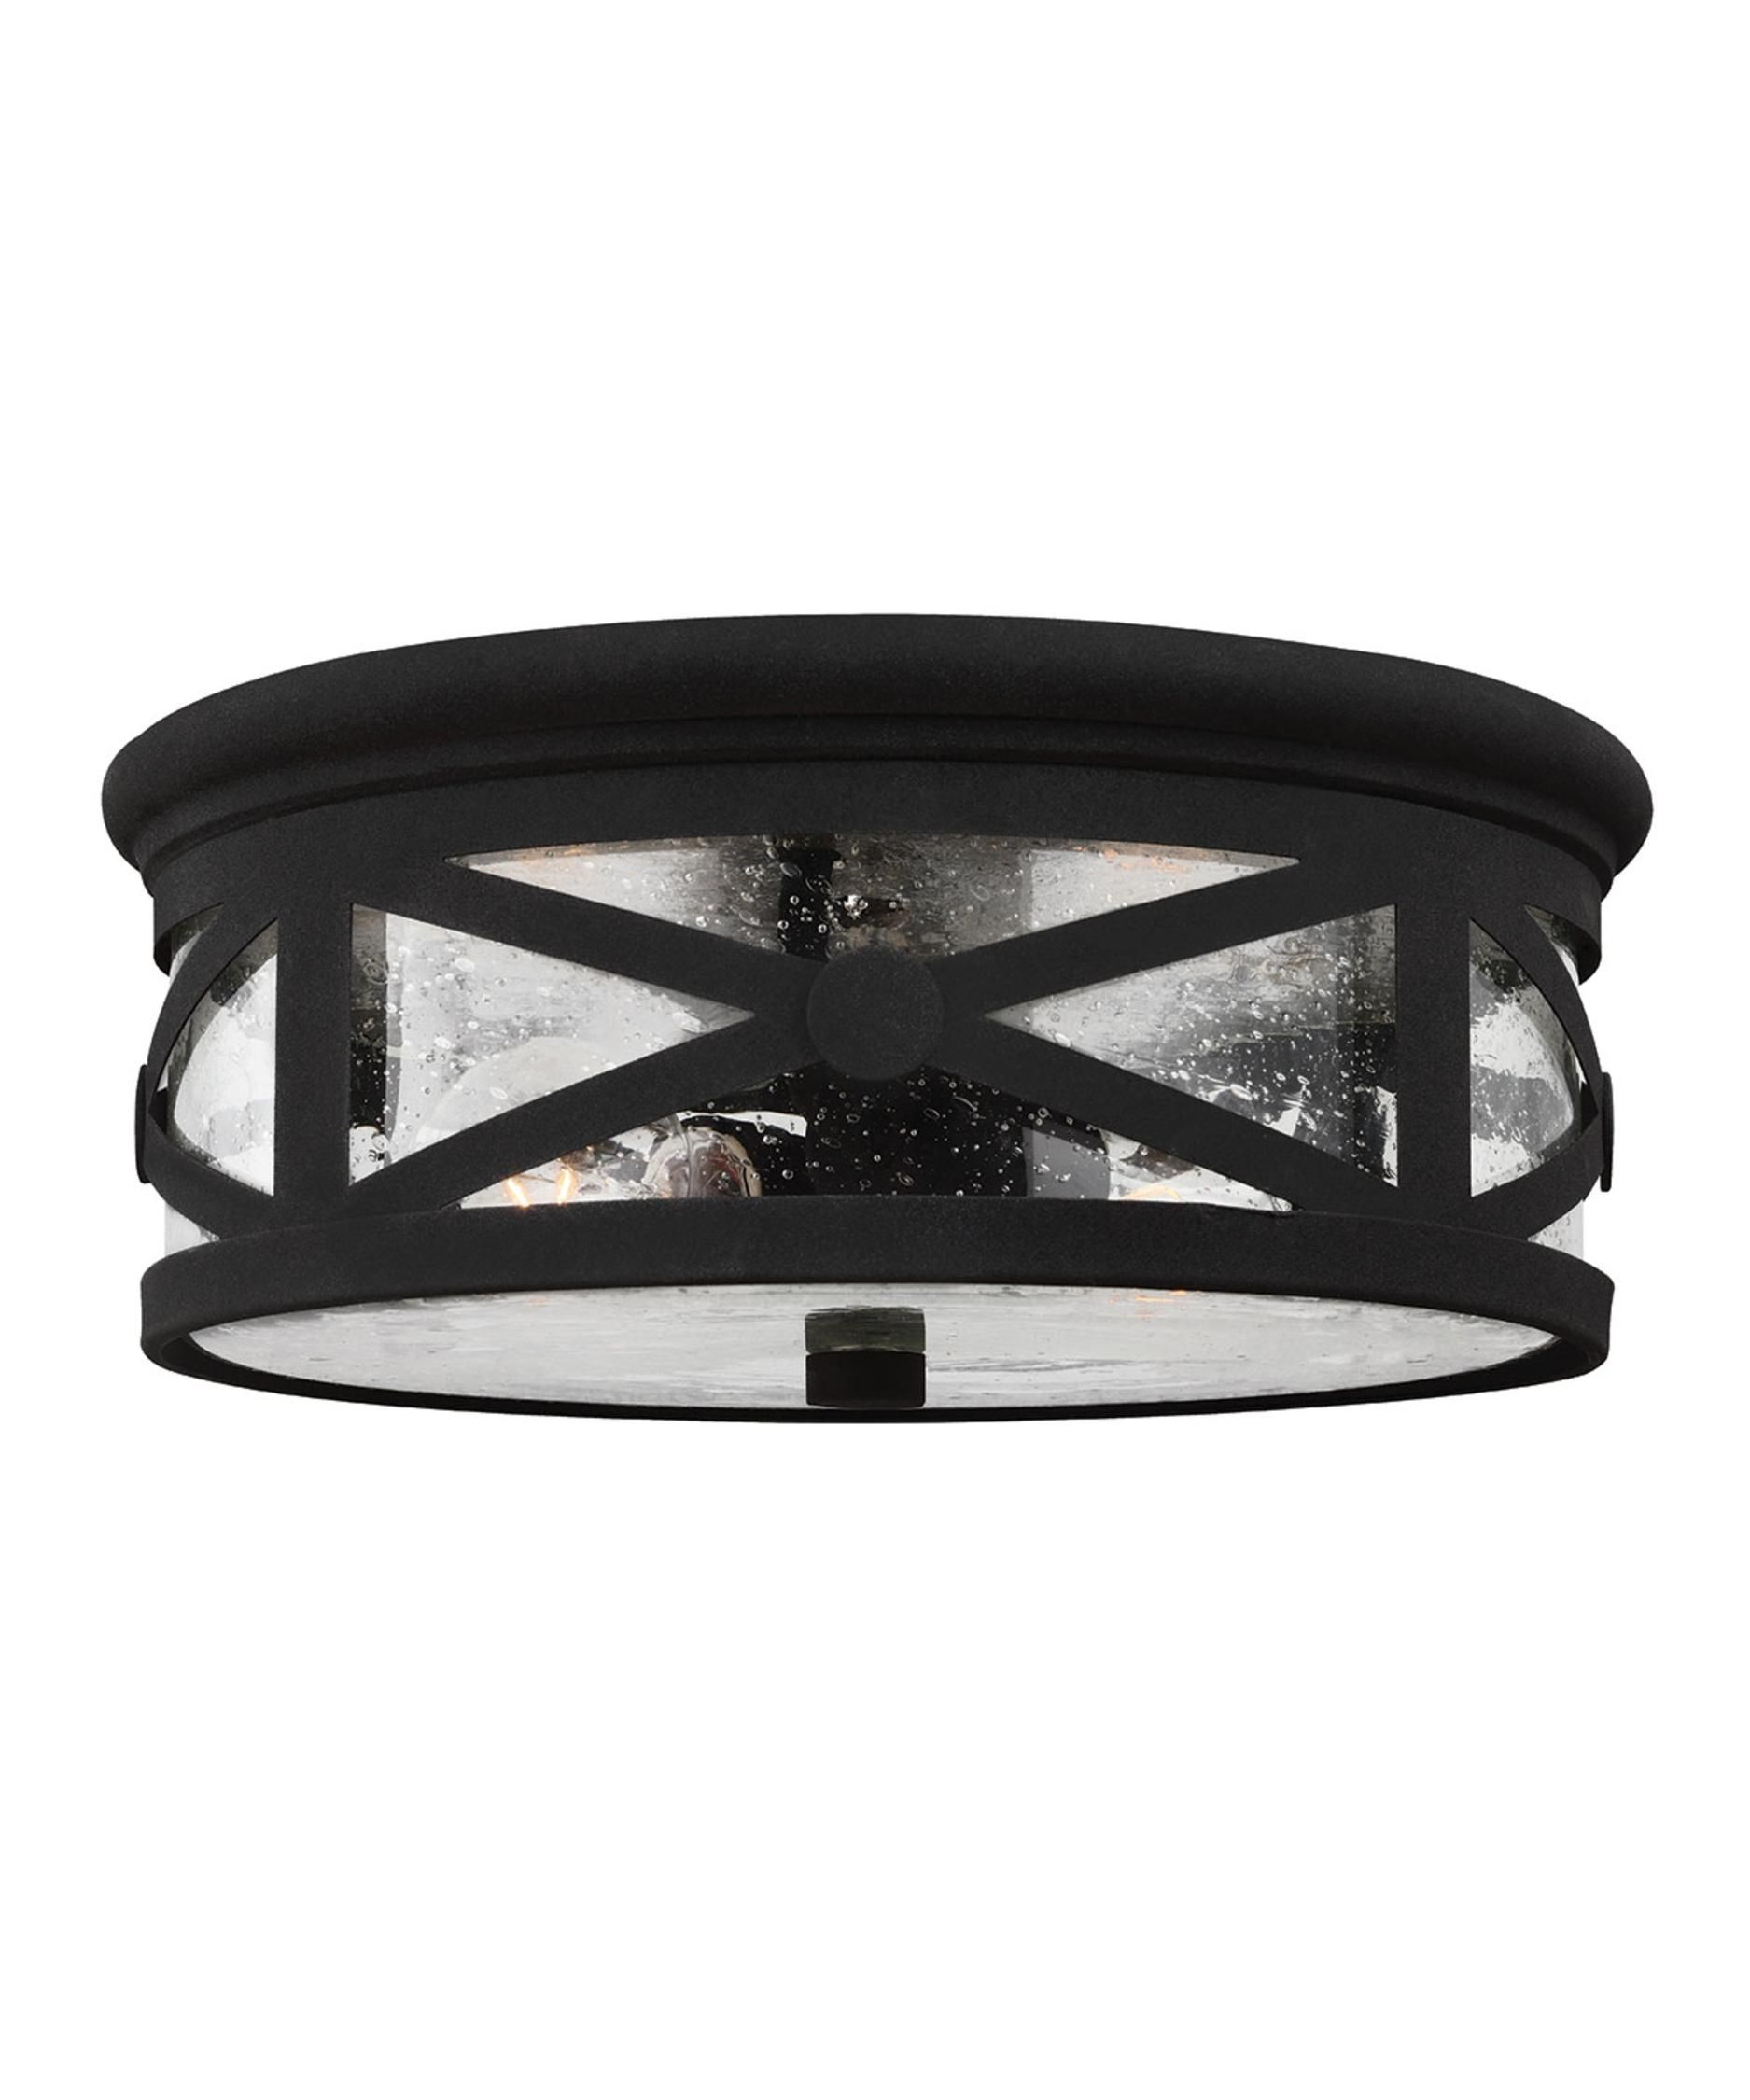 Shop Sea Gull Lighting 7821402 Lakeview 2 Light Outdoor Ceiling Flush Mount  At Loweu0027s Canada. Find Our Selection Of Outdoor Flush Mount Lighting At The  ...